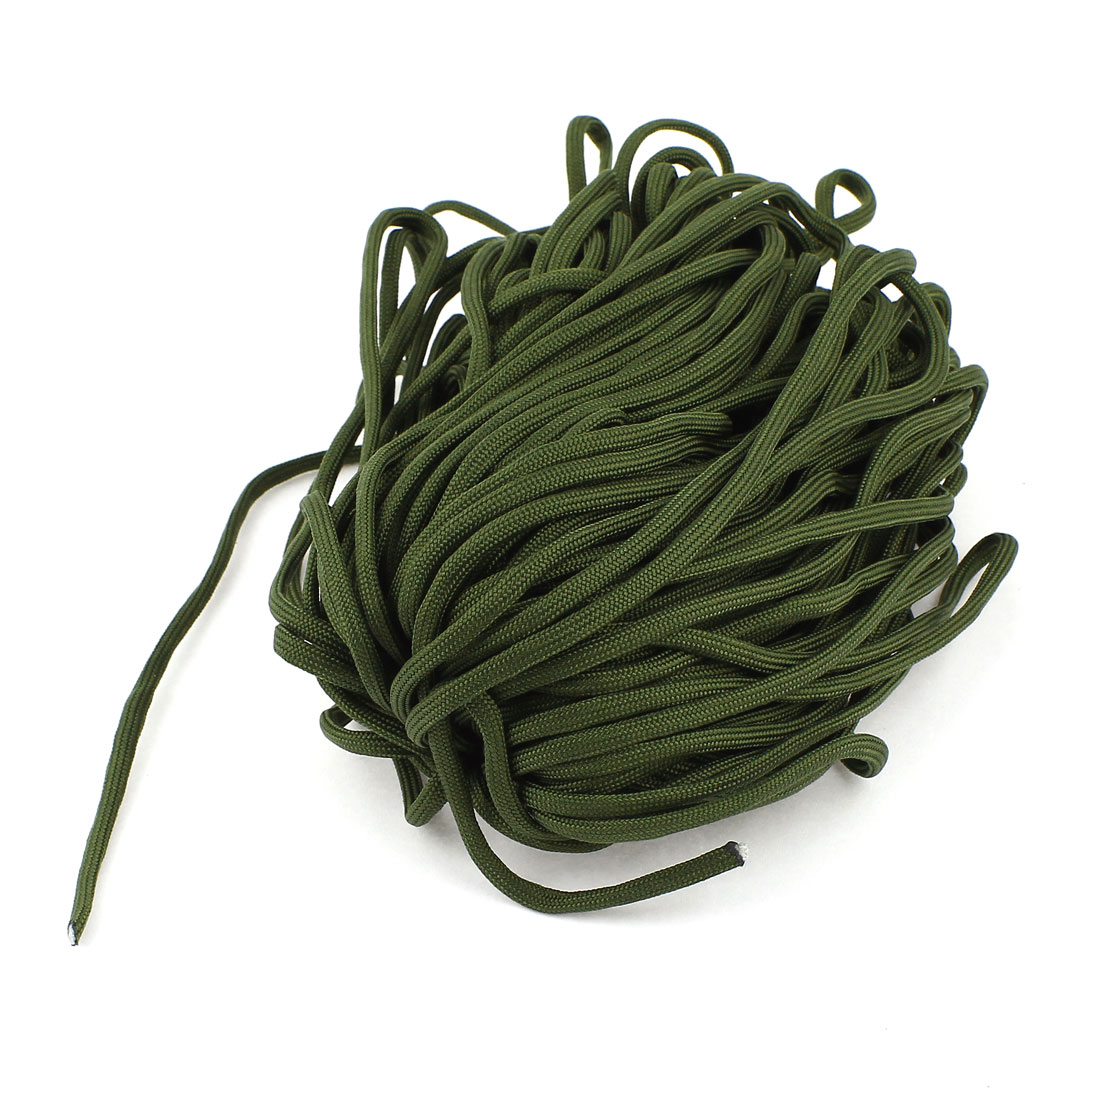 Nylon Parachute Survival String Rope Cord Army Green 30 Meters